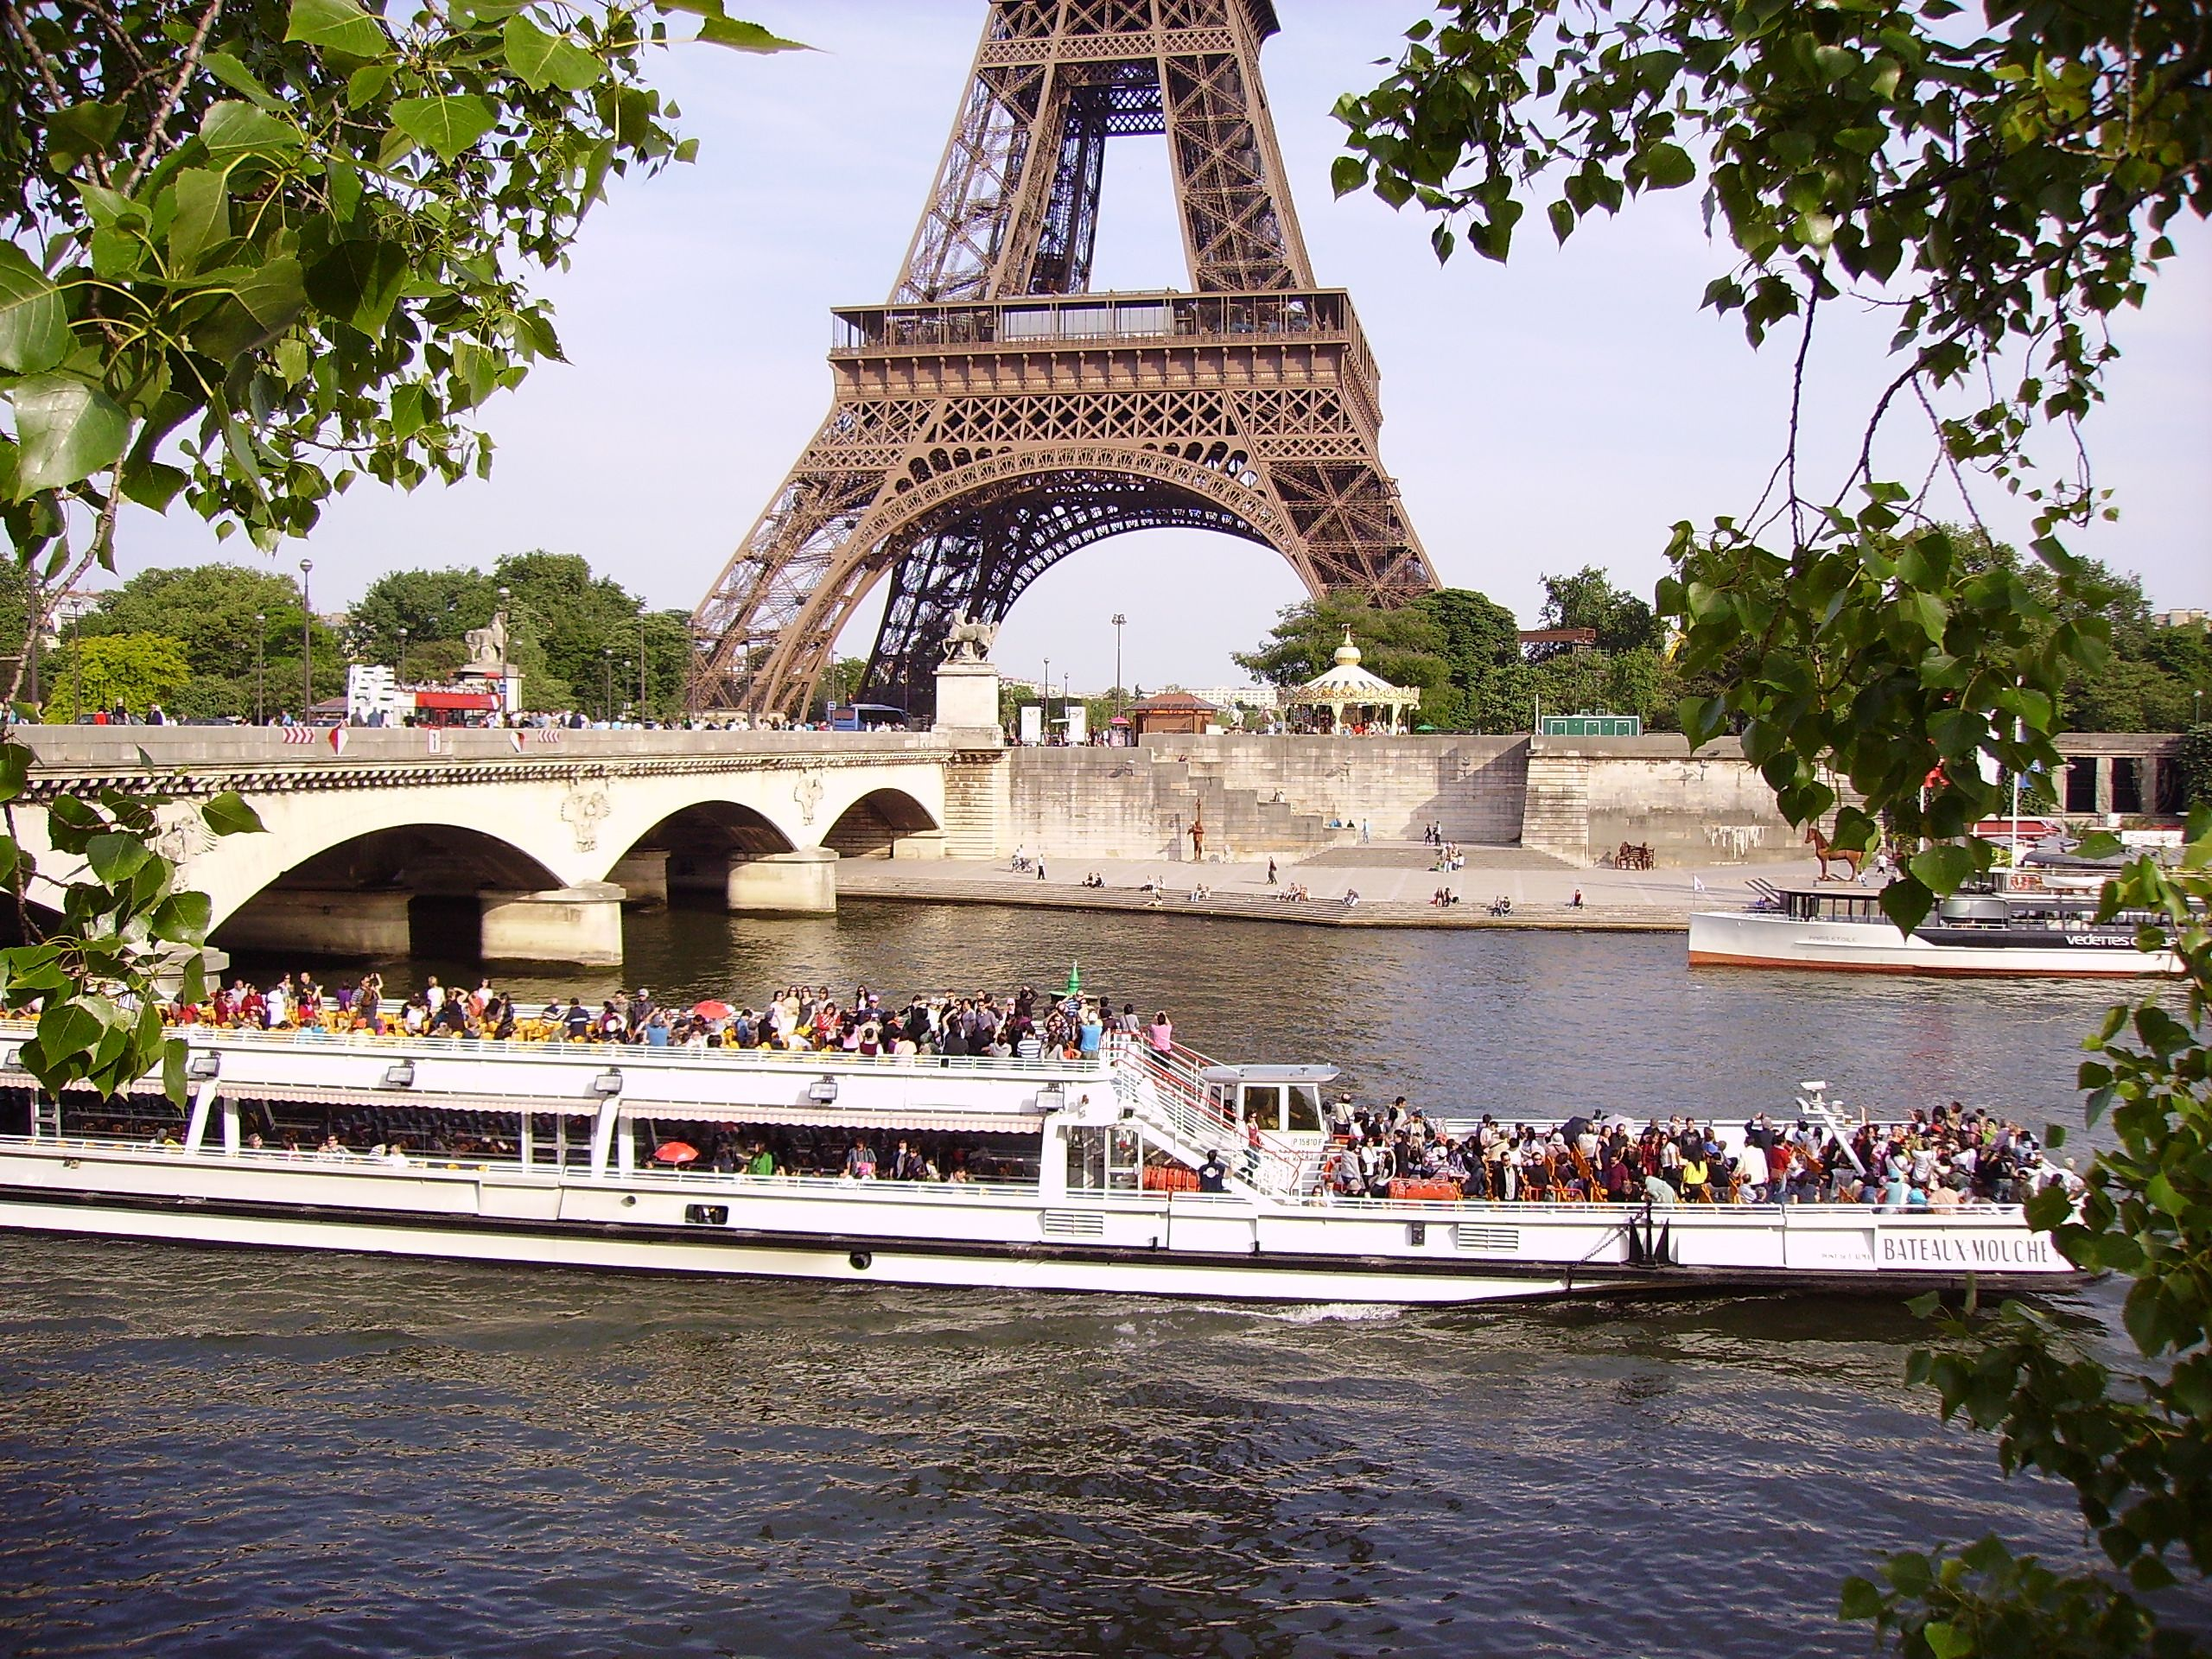 bateau mouche on river seine near the pont d 39 i na and eiffel tower in paris france flickr. Black Bedroom Furniture Sets. Home Design Ideas